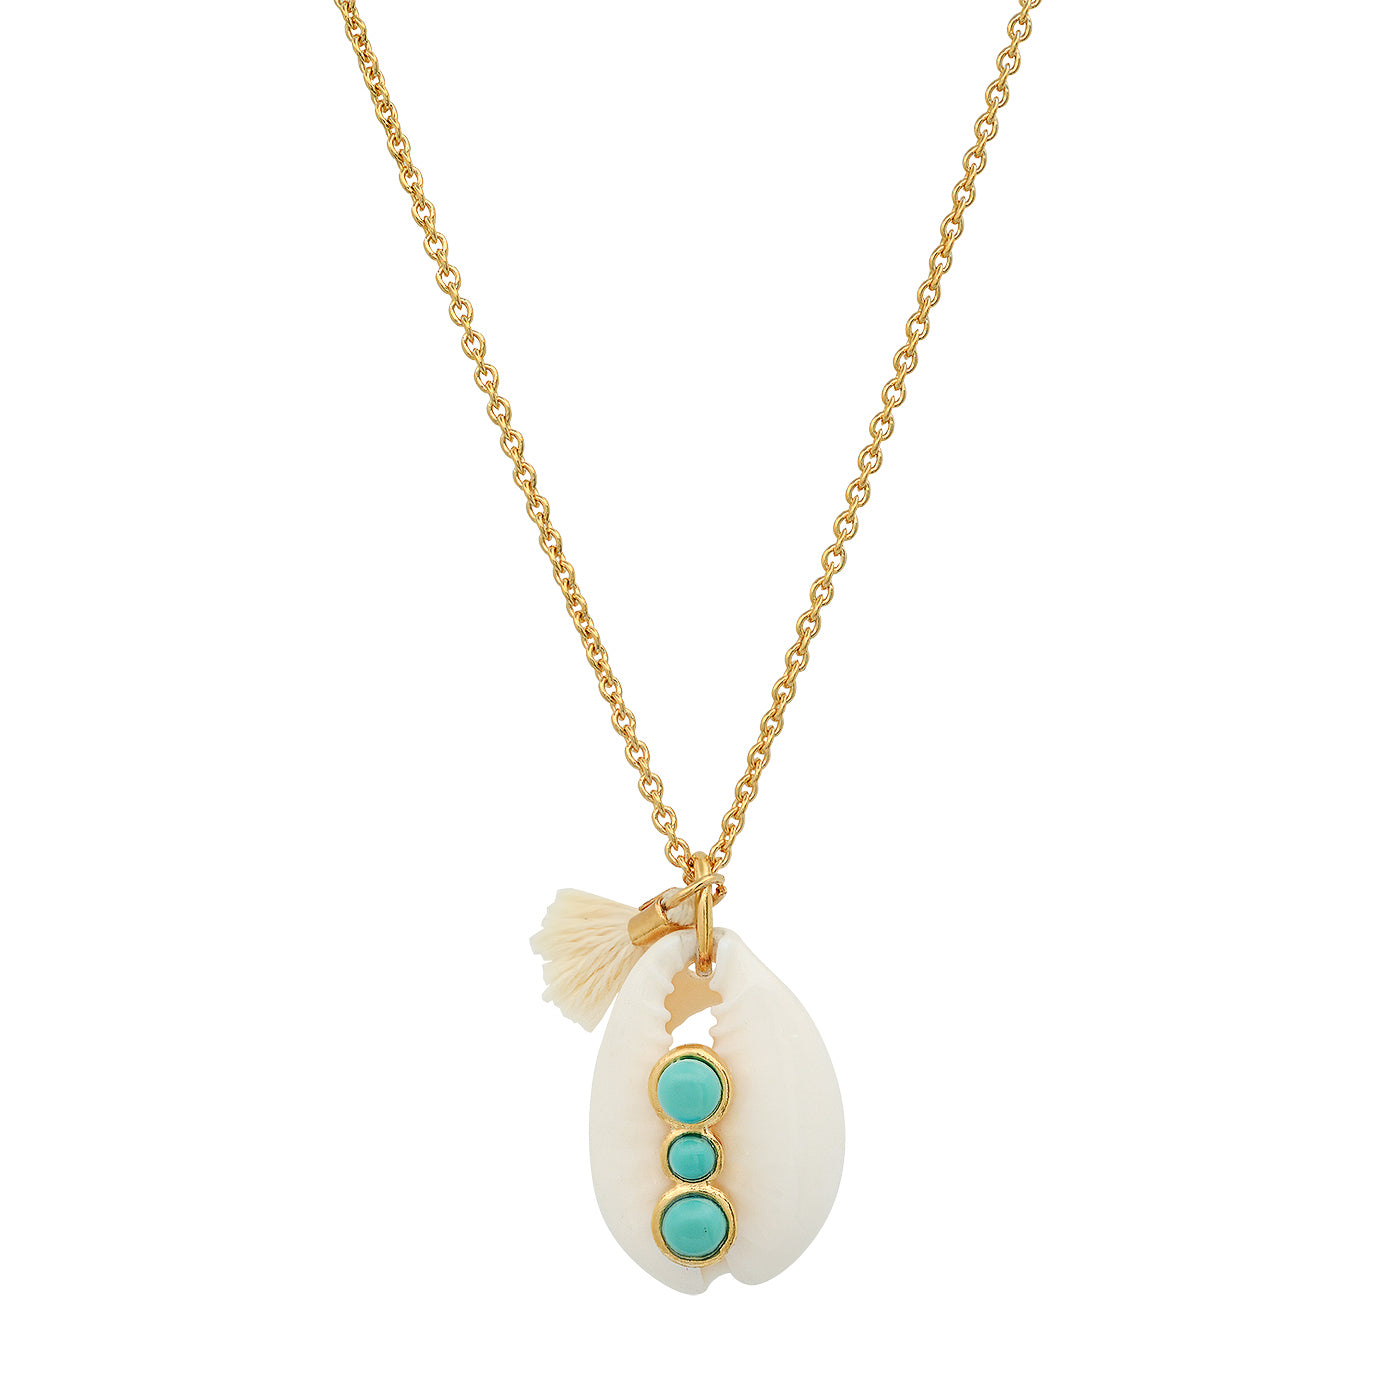 Cowrie Shell Necklace with Bezel Set Turquoise Stone and Tassel Charm